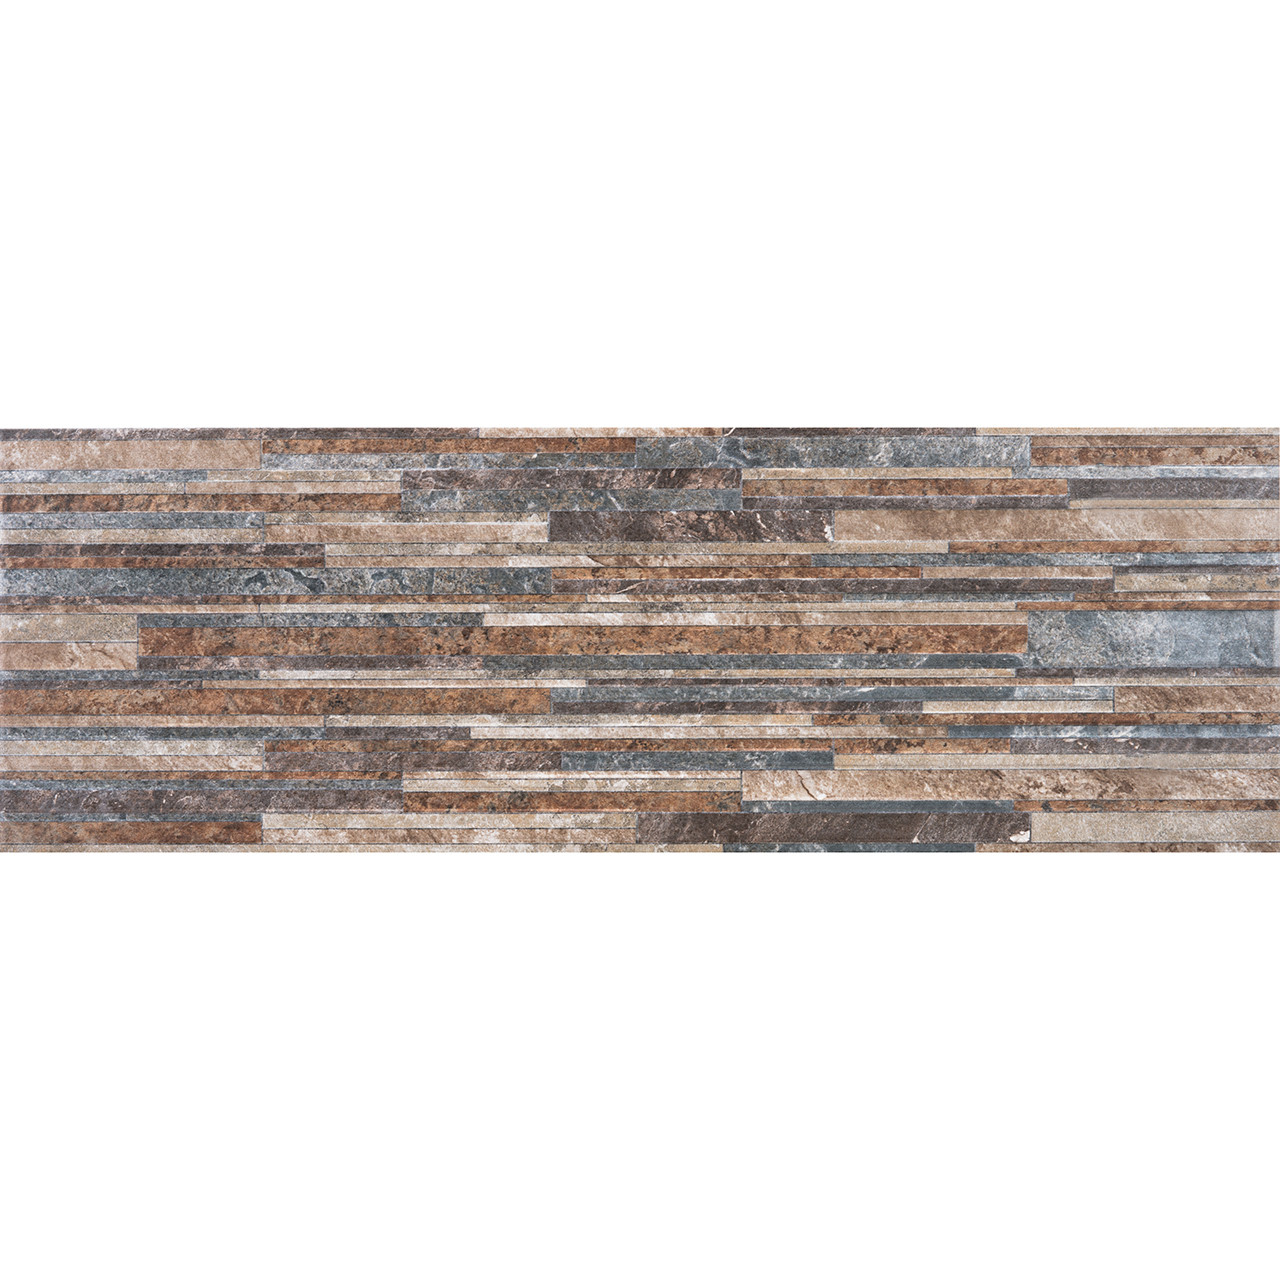 Muretto Pizzara 60x20 Ceramic Tile